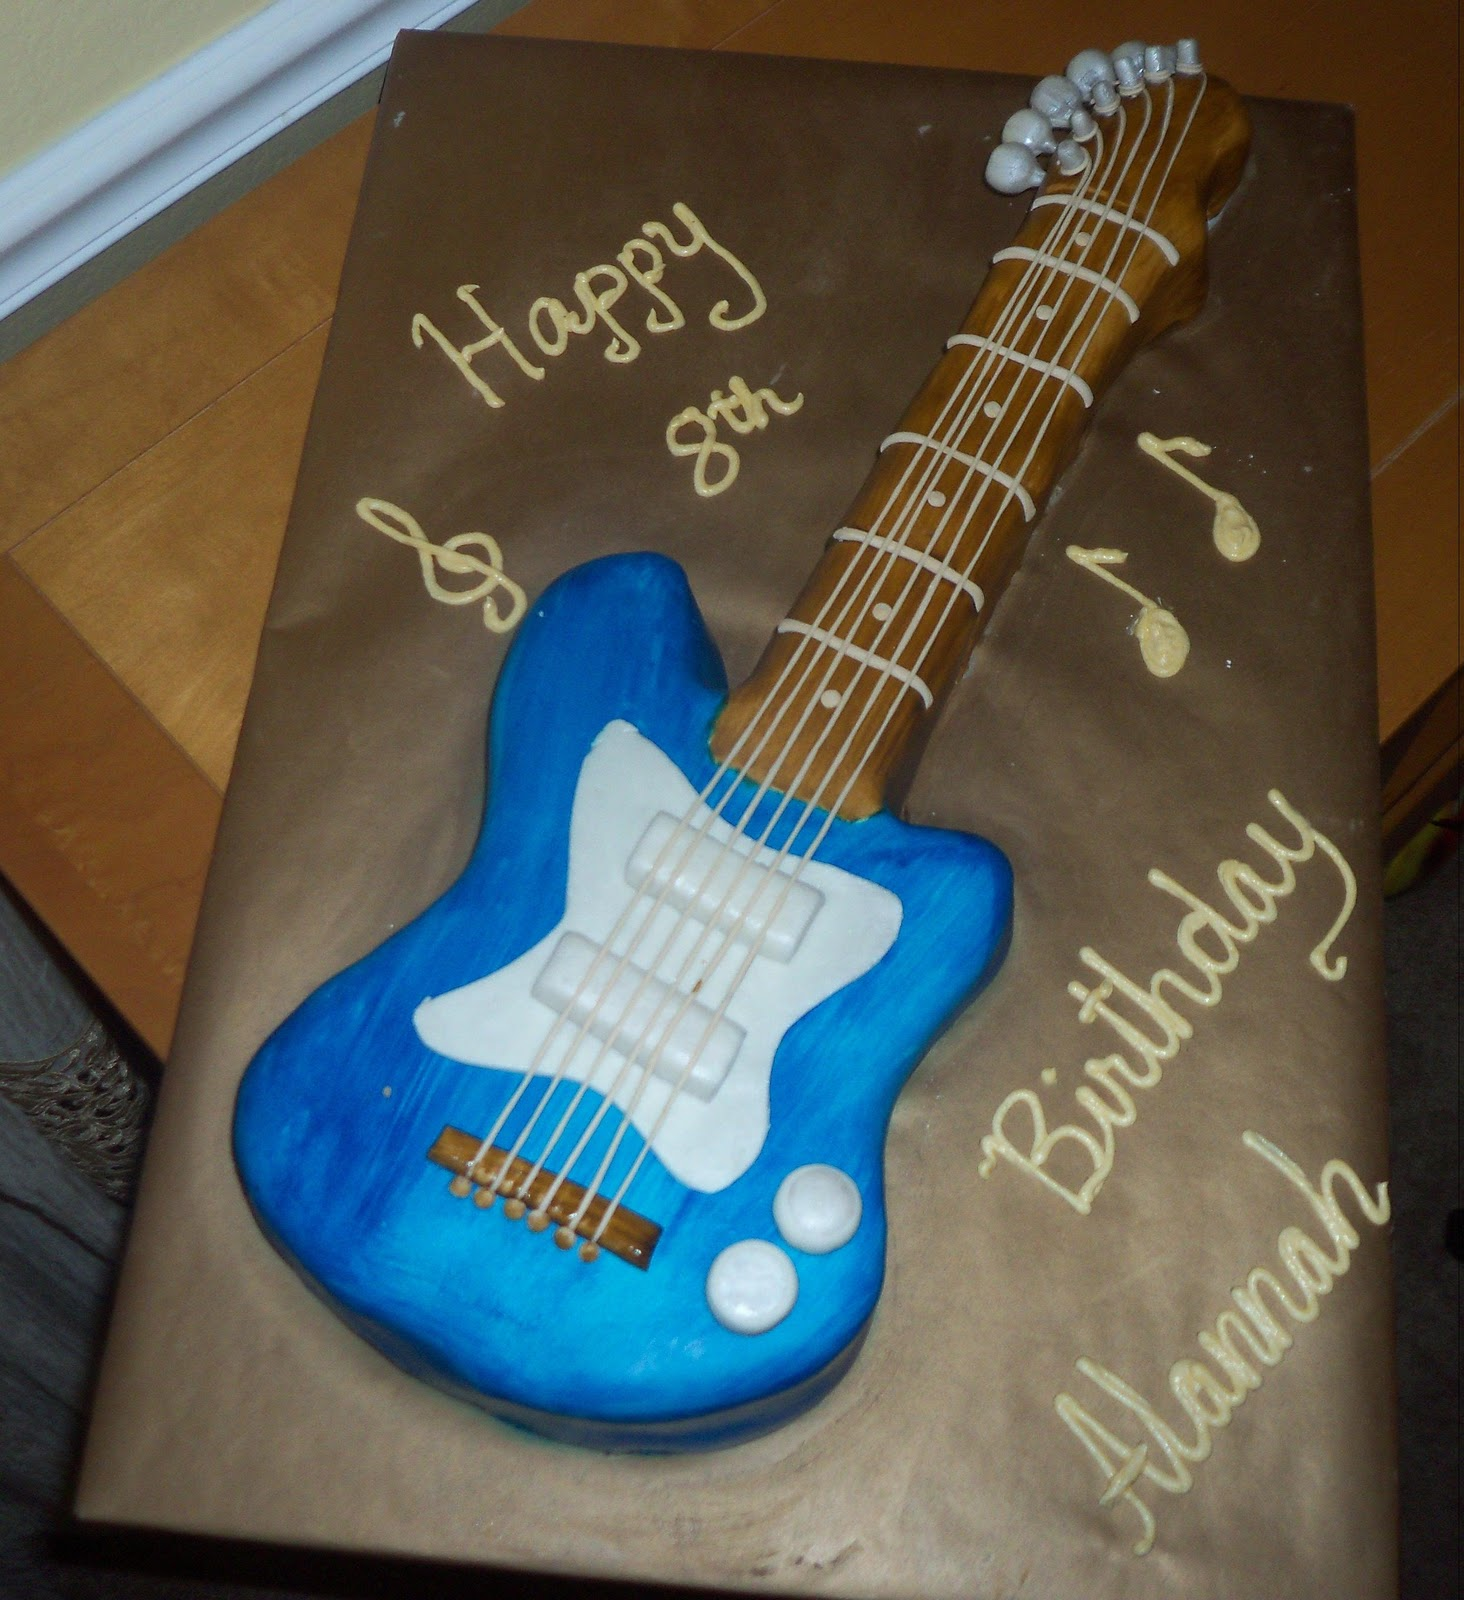 Easy guitar cake ideas 14771 guitar cake template http mim for Guitar templates for cakes